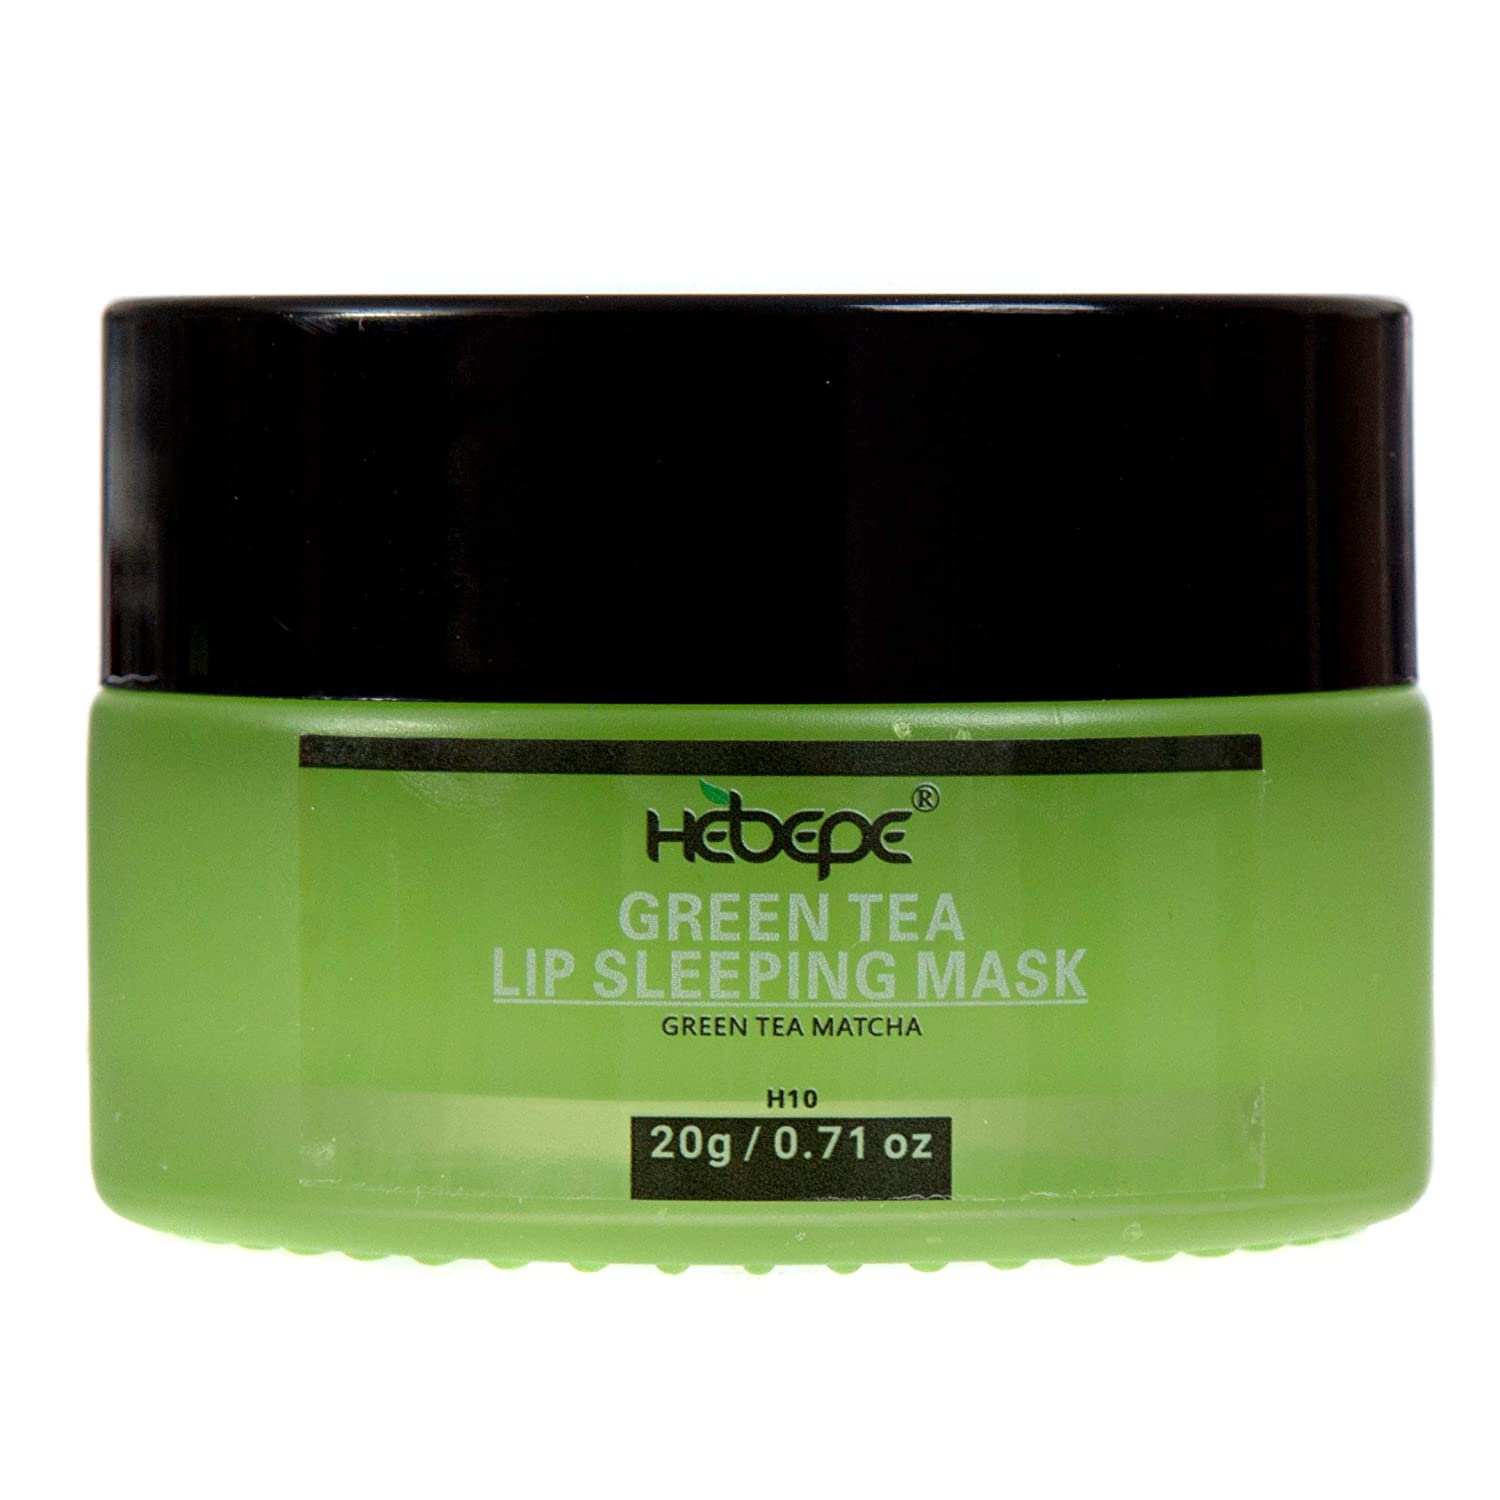 Hebepe Matcha Green Tea Lip Sleeping Mask Overnight, Dry Lips Treatment with Coconut Oil, Vitamin E, Fig Extract, Orchid, and Shea Butter, Lip Moisturizer for Severe Dry, Chapped, Cracked Lips